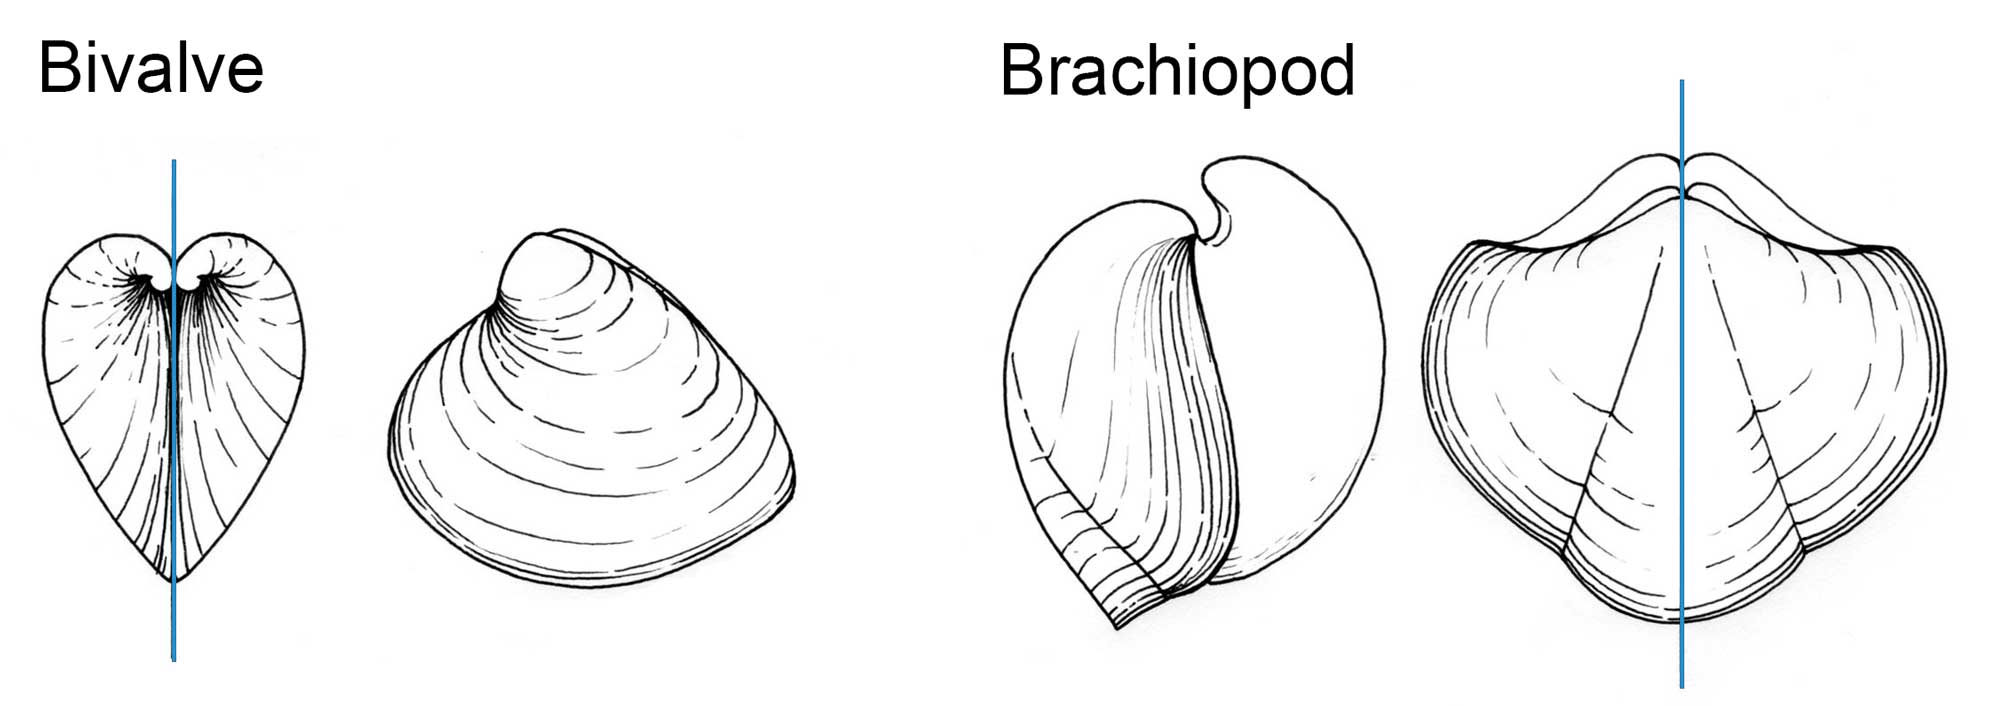 Drawings showing the differences between bivalve and brachiopod shells.